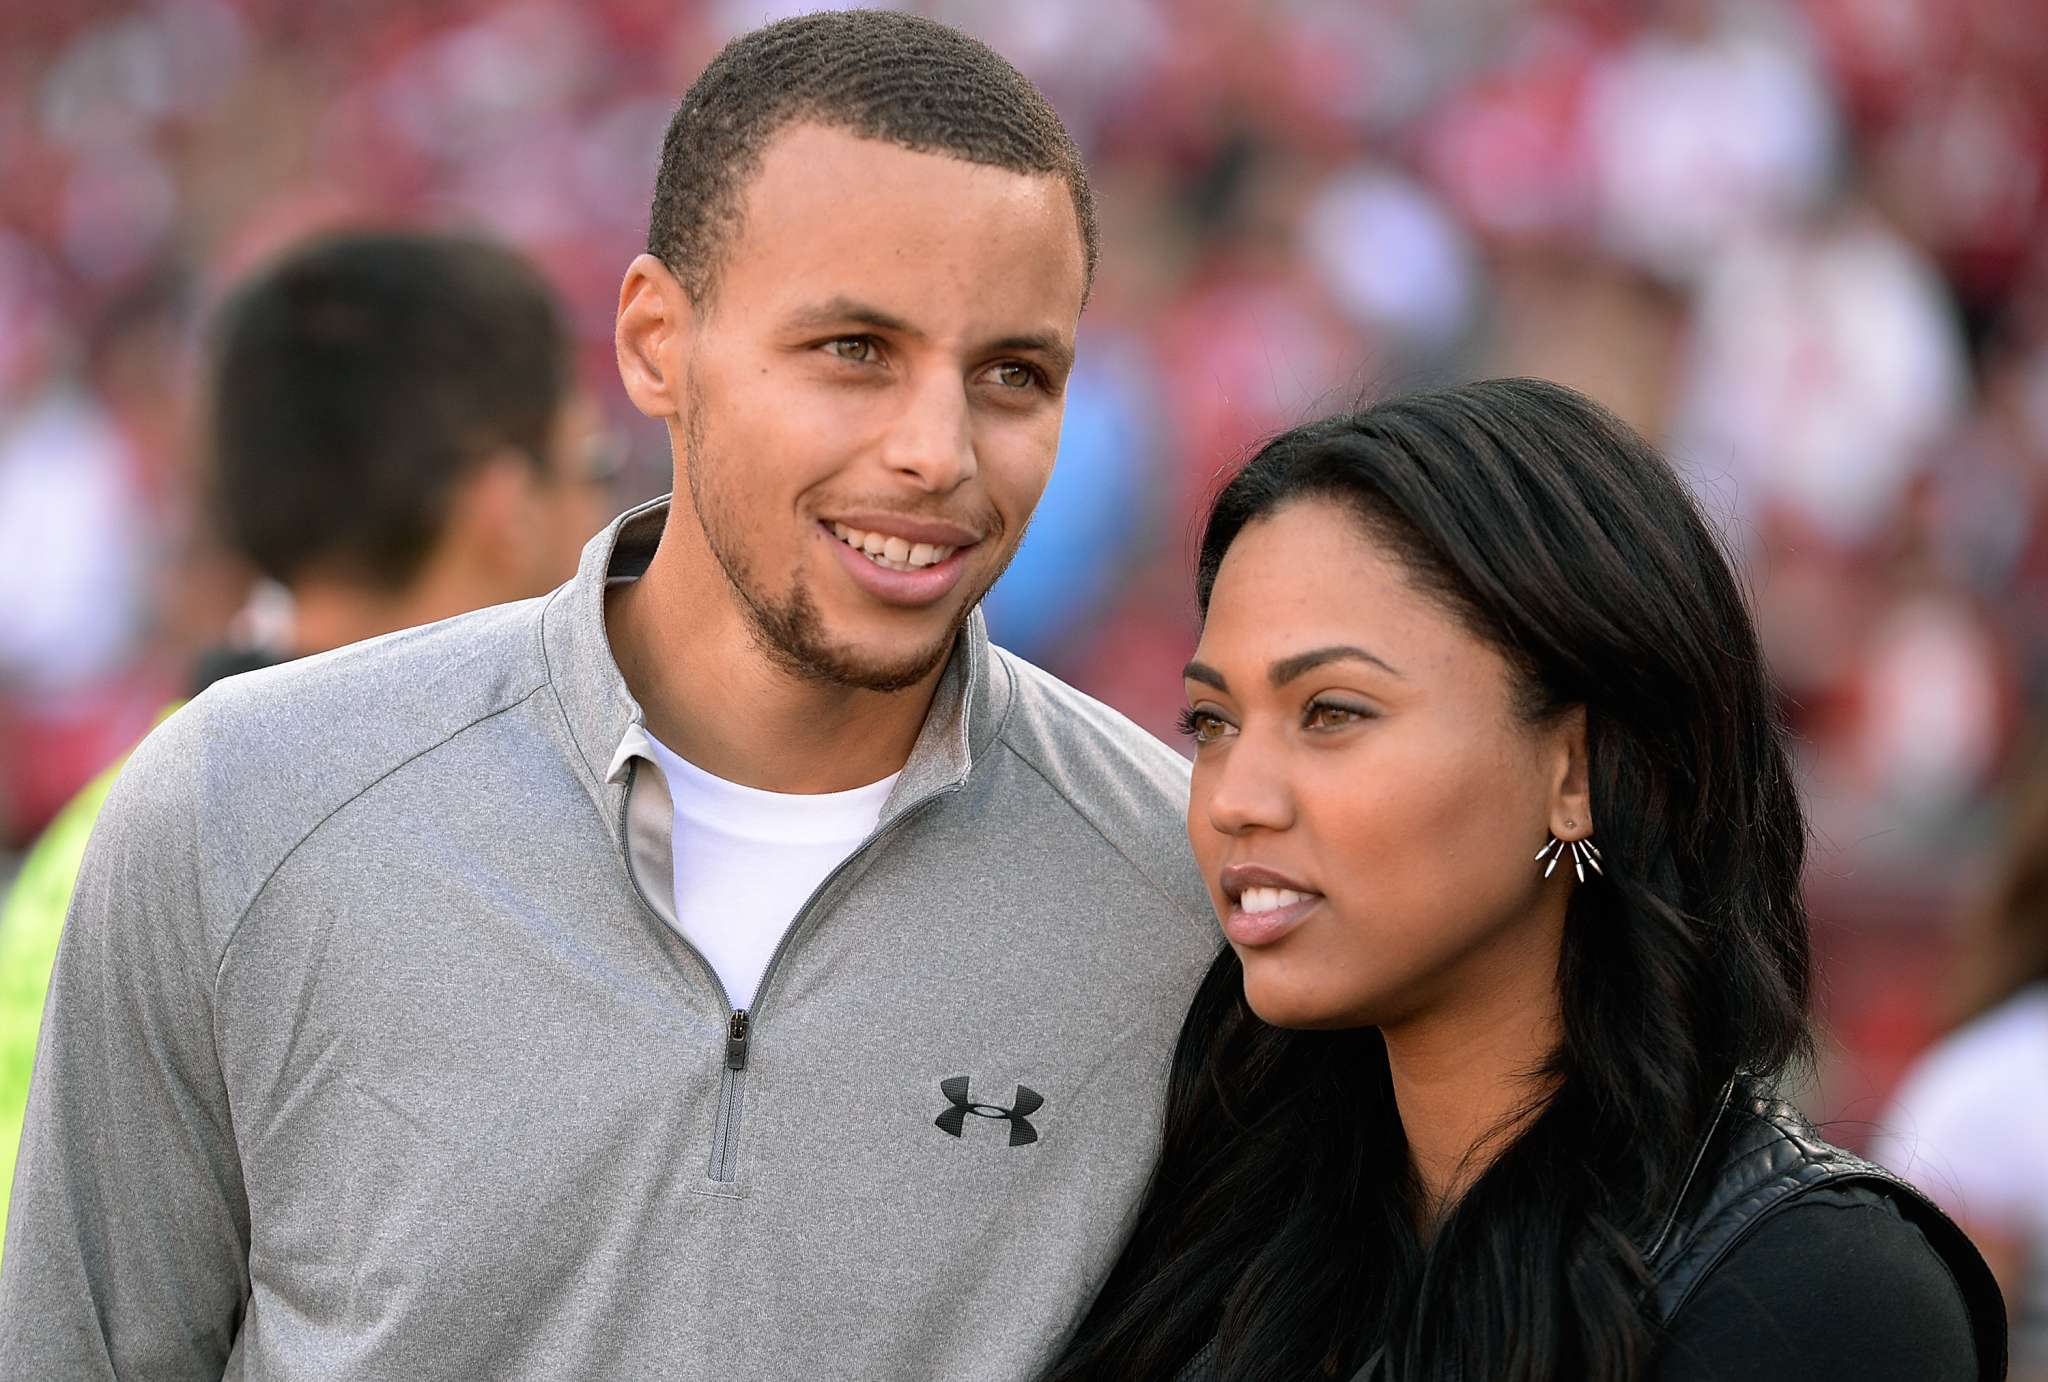 ayesha-curry-says-she-hates-how-women-are-always-lurking-around-steph-curry